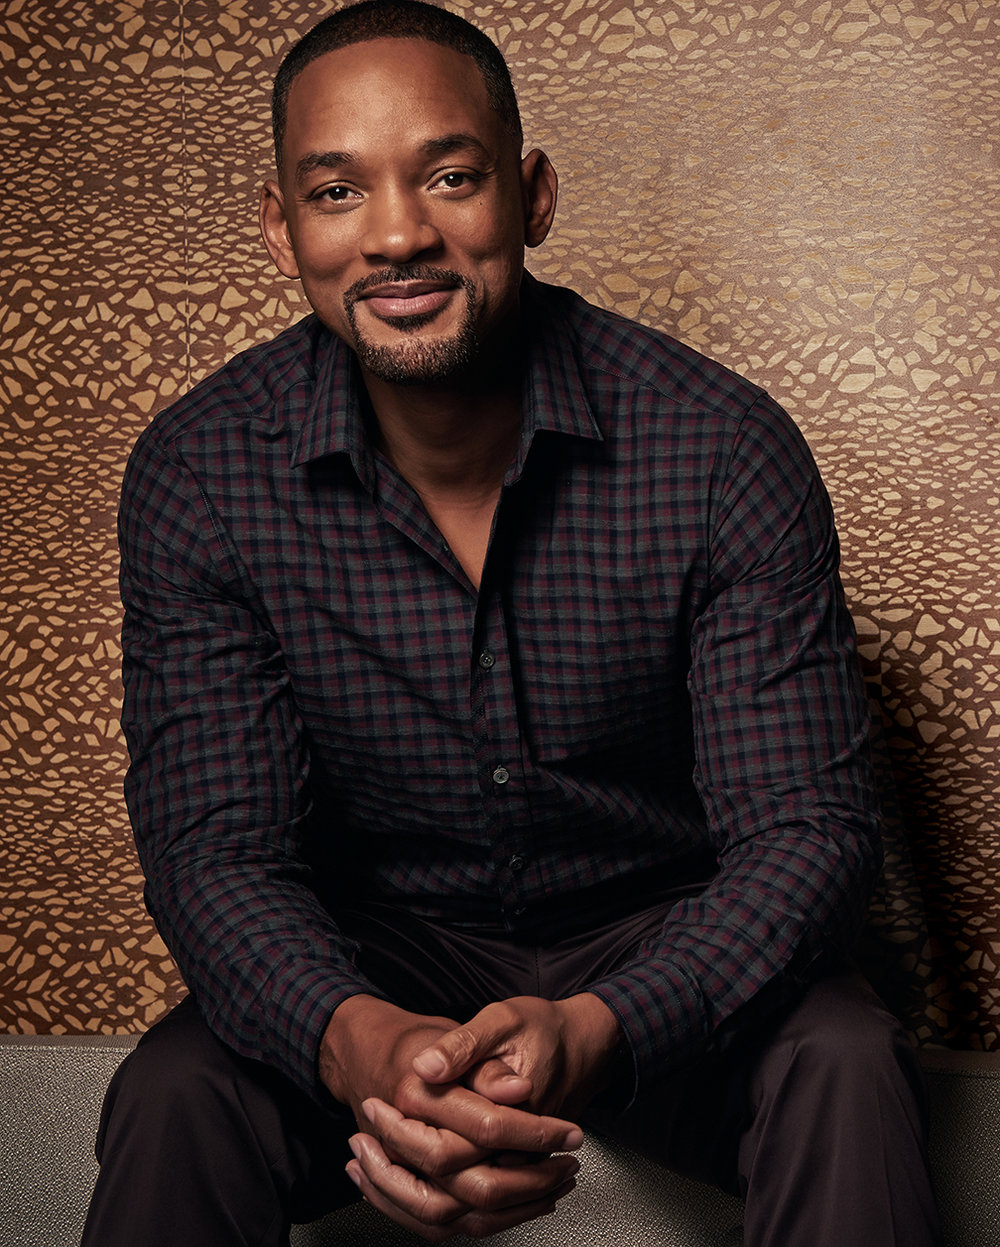 WILLSMITH_Backstage7148v5.jpg